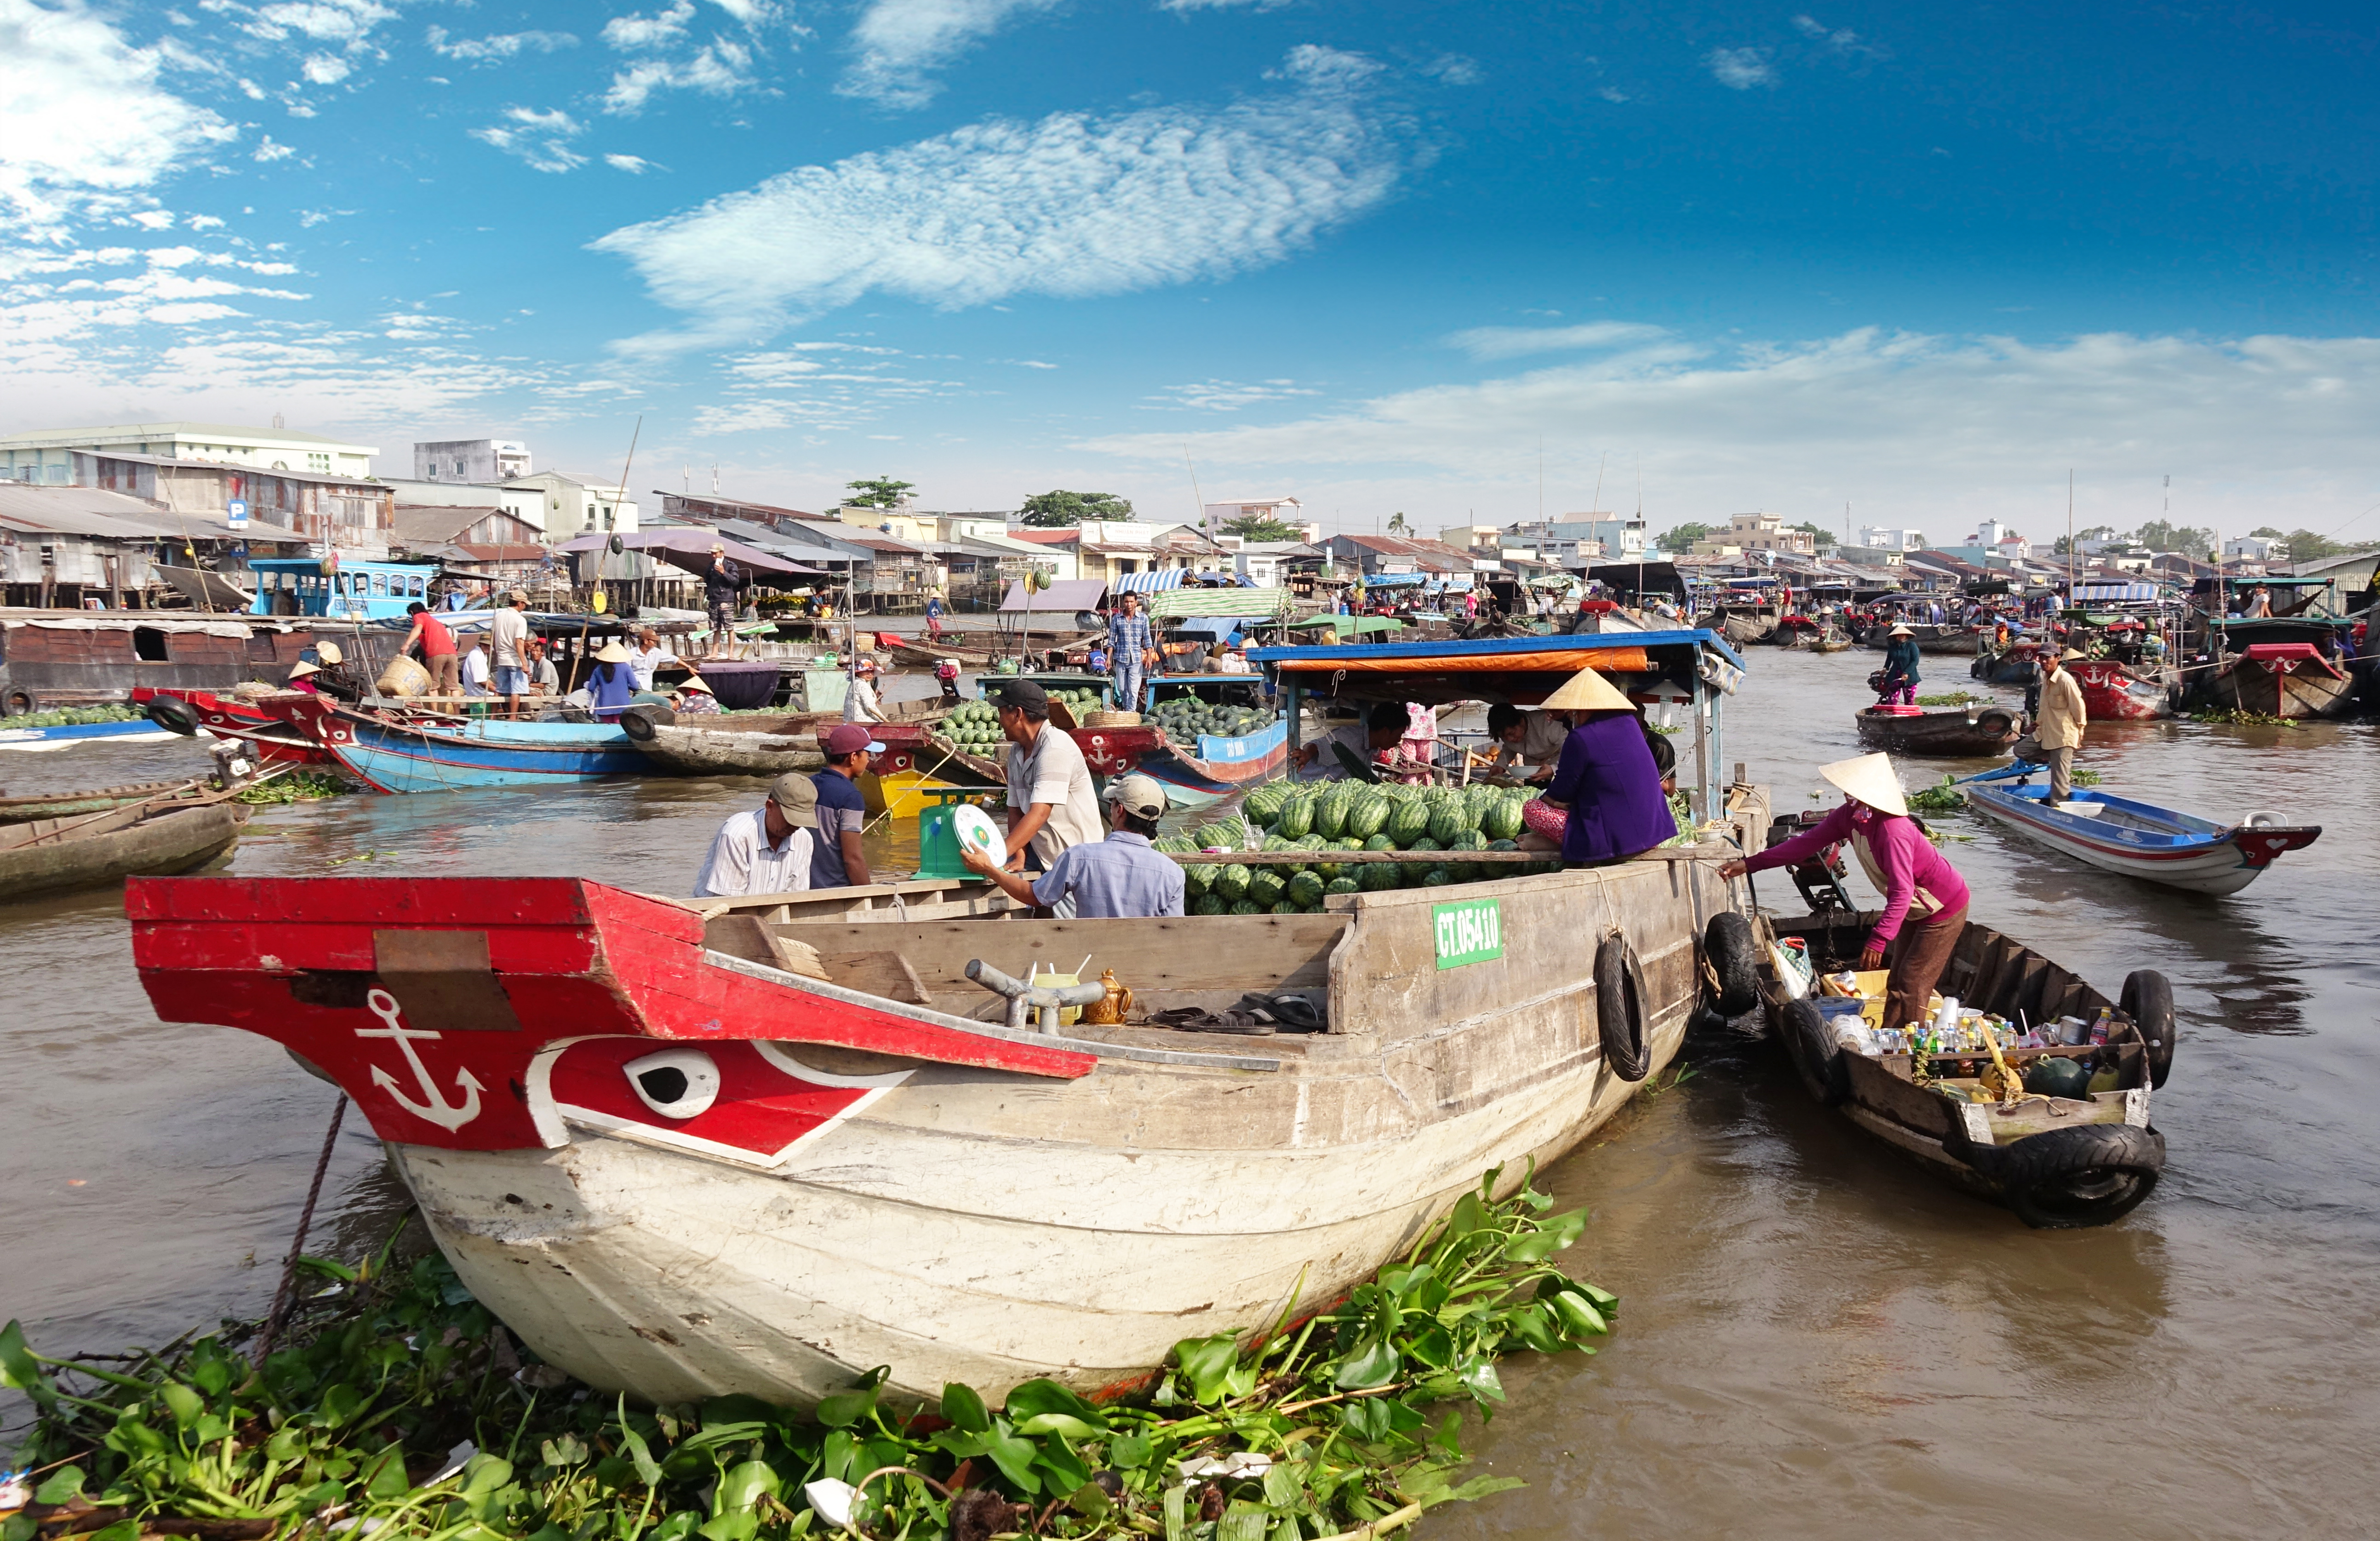 The Authentic Cai Rang floating market of the Mekong Delta